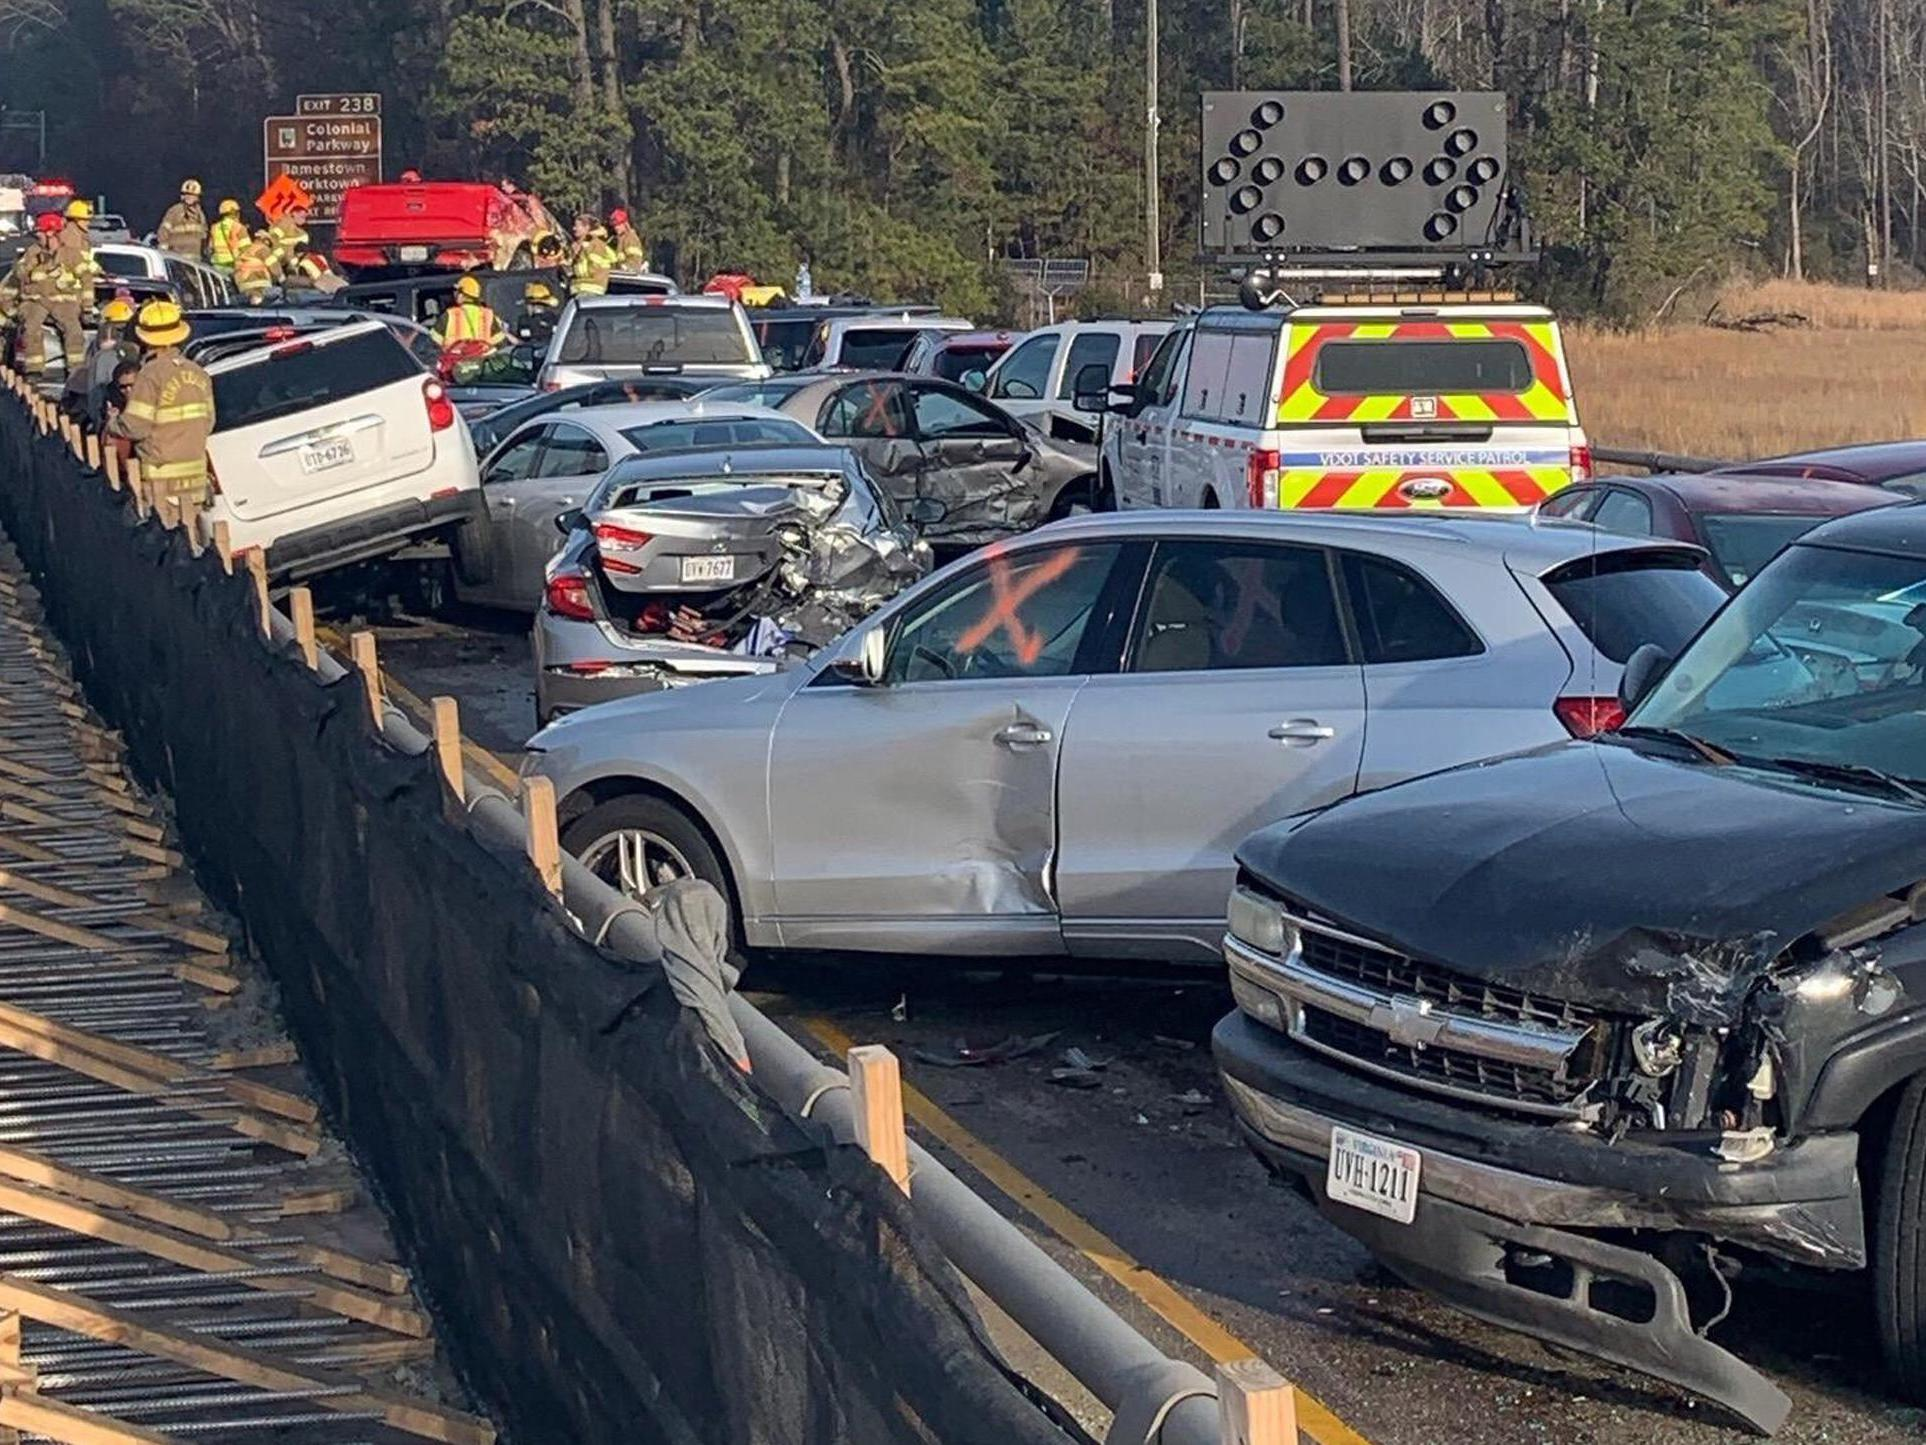 Dozens of people injured in 69-car pile-up on busy road